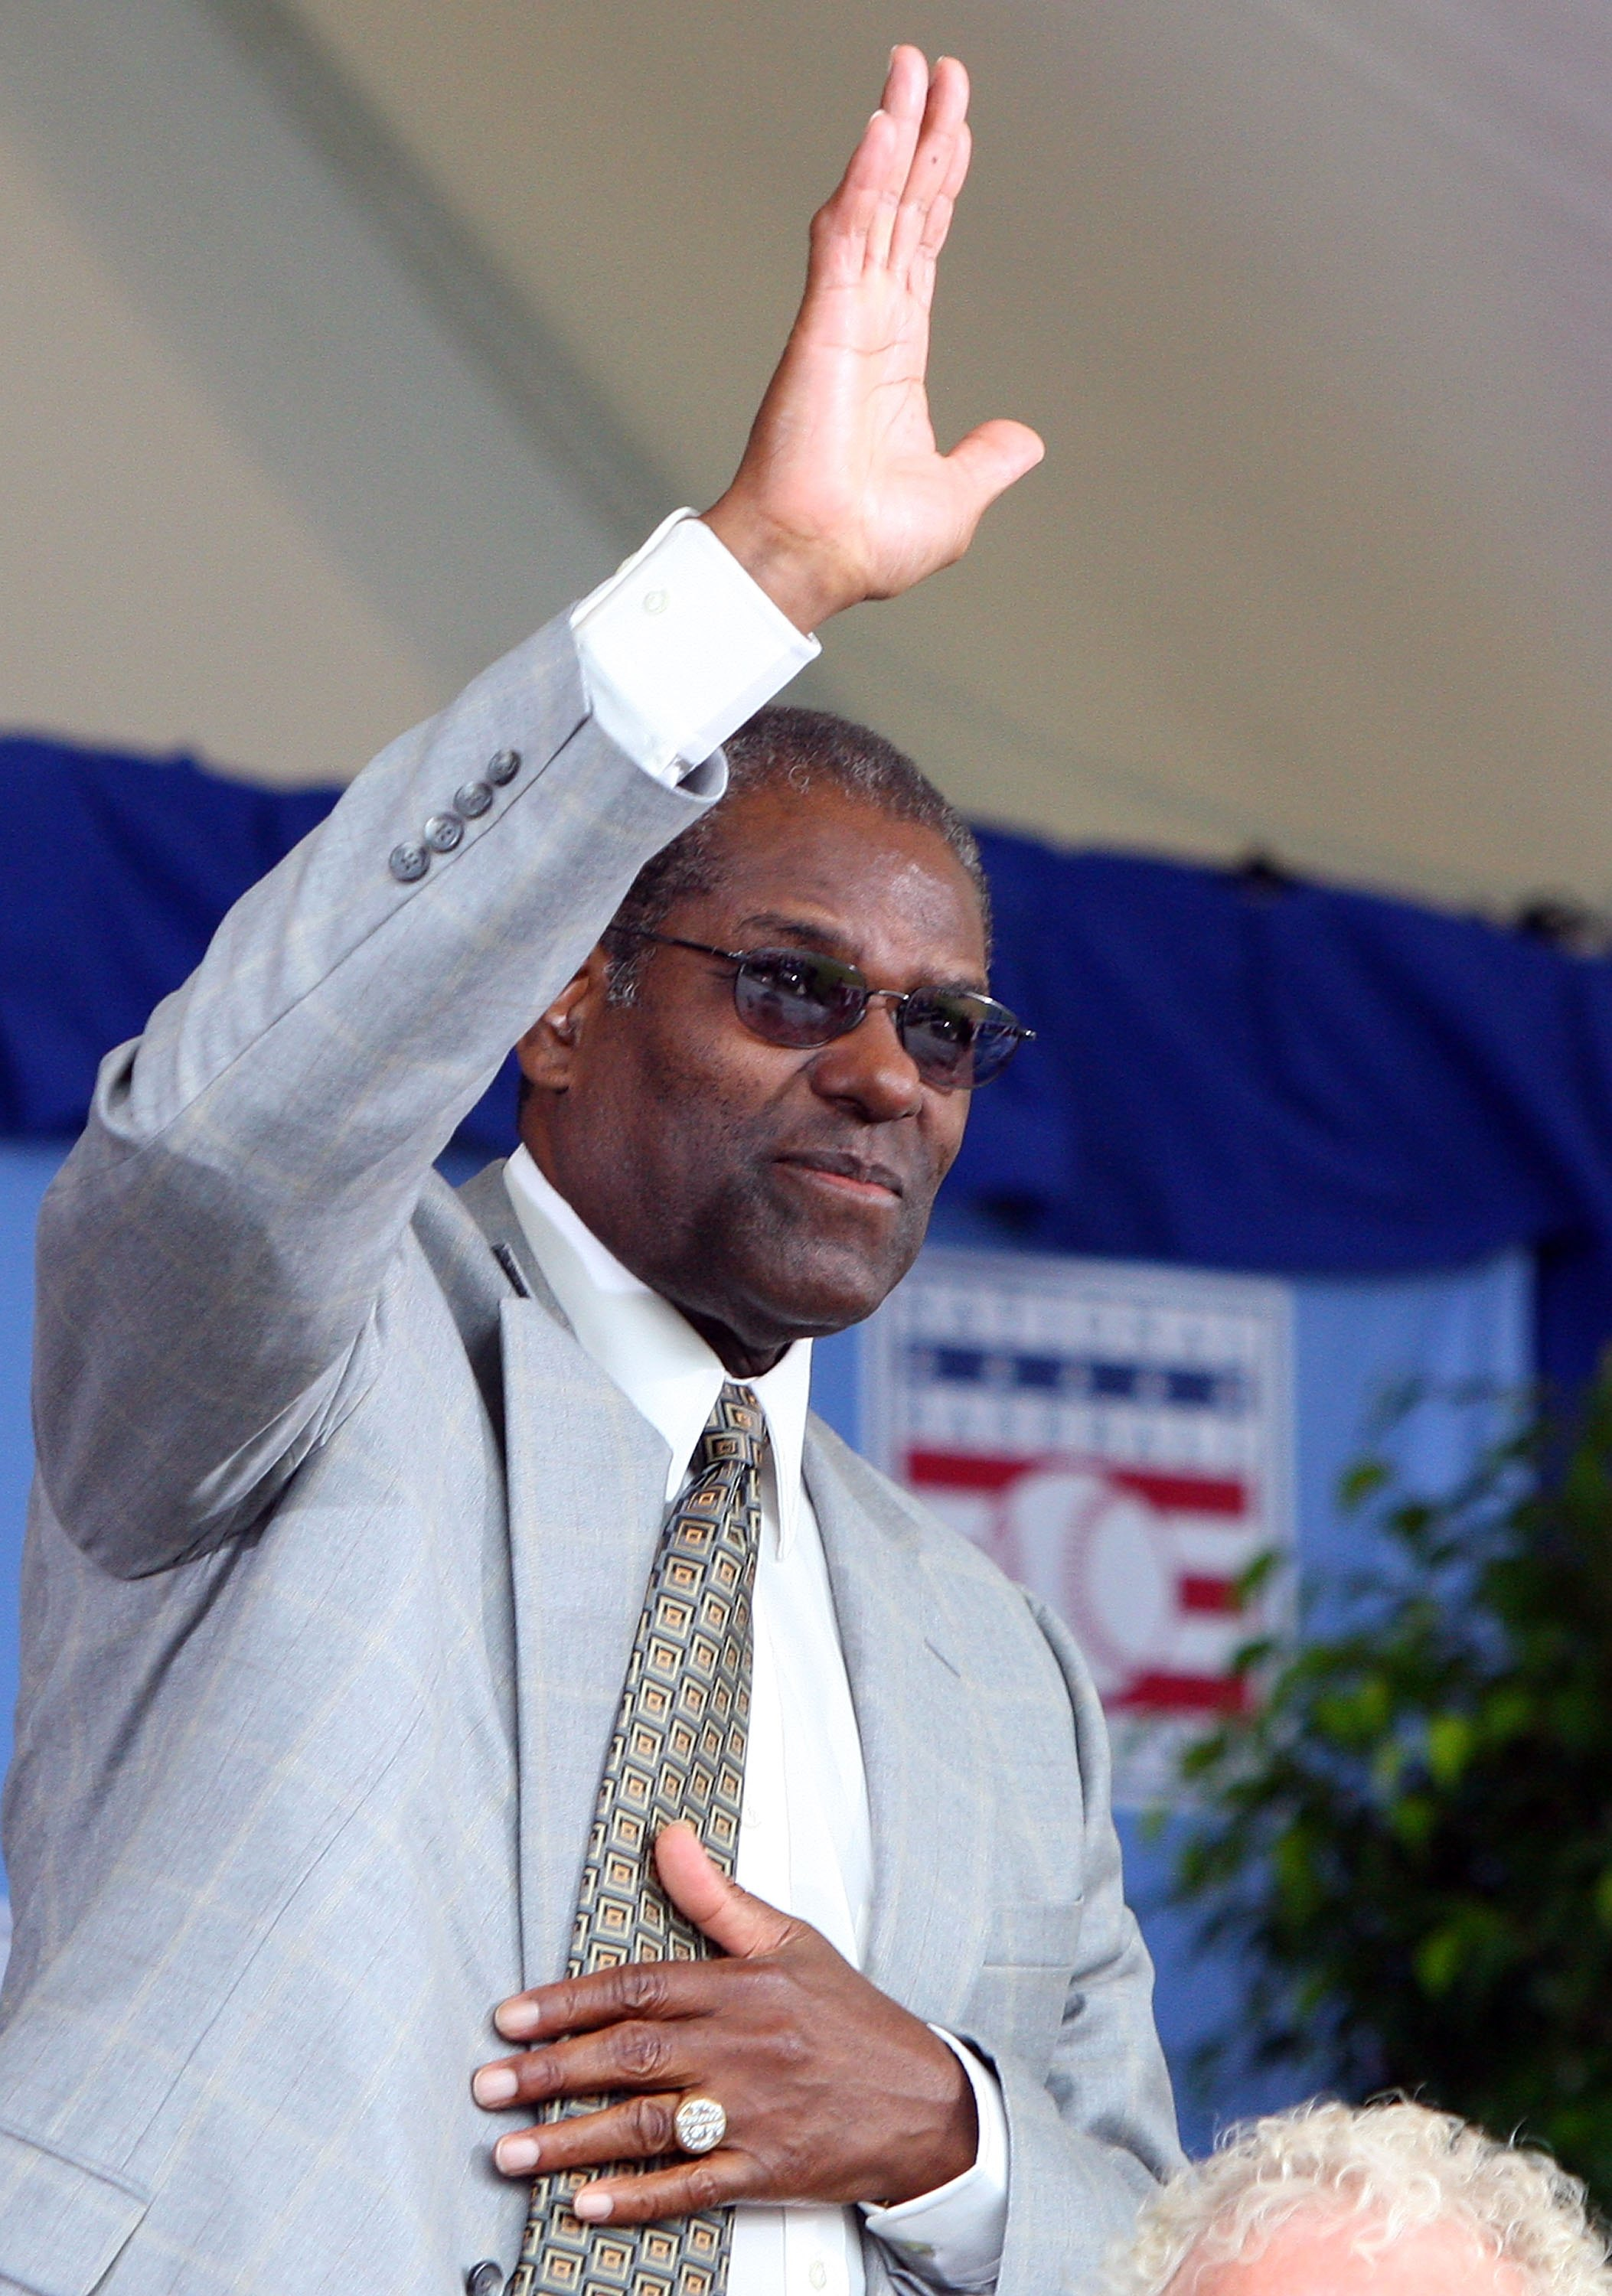 COOPERSTOWN, NY - JULY 26:  Hall of Famer Bob Gibson waves to the crowd as he is introduced at Clark Sports Center during the 2009  Baseball Hall of Fame induction ceremony on July 26, 2009 in Cooperstown, New York.  (Photo by Jim McIsaac/Getty Images)